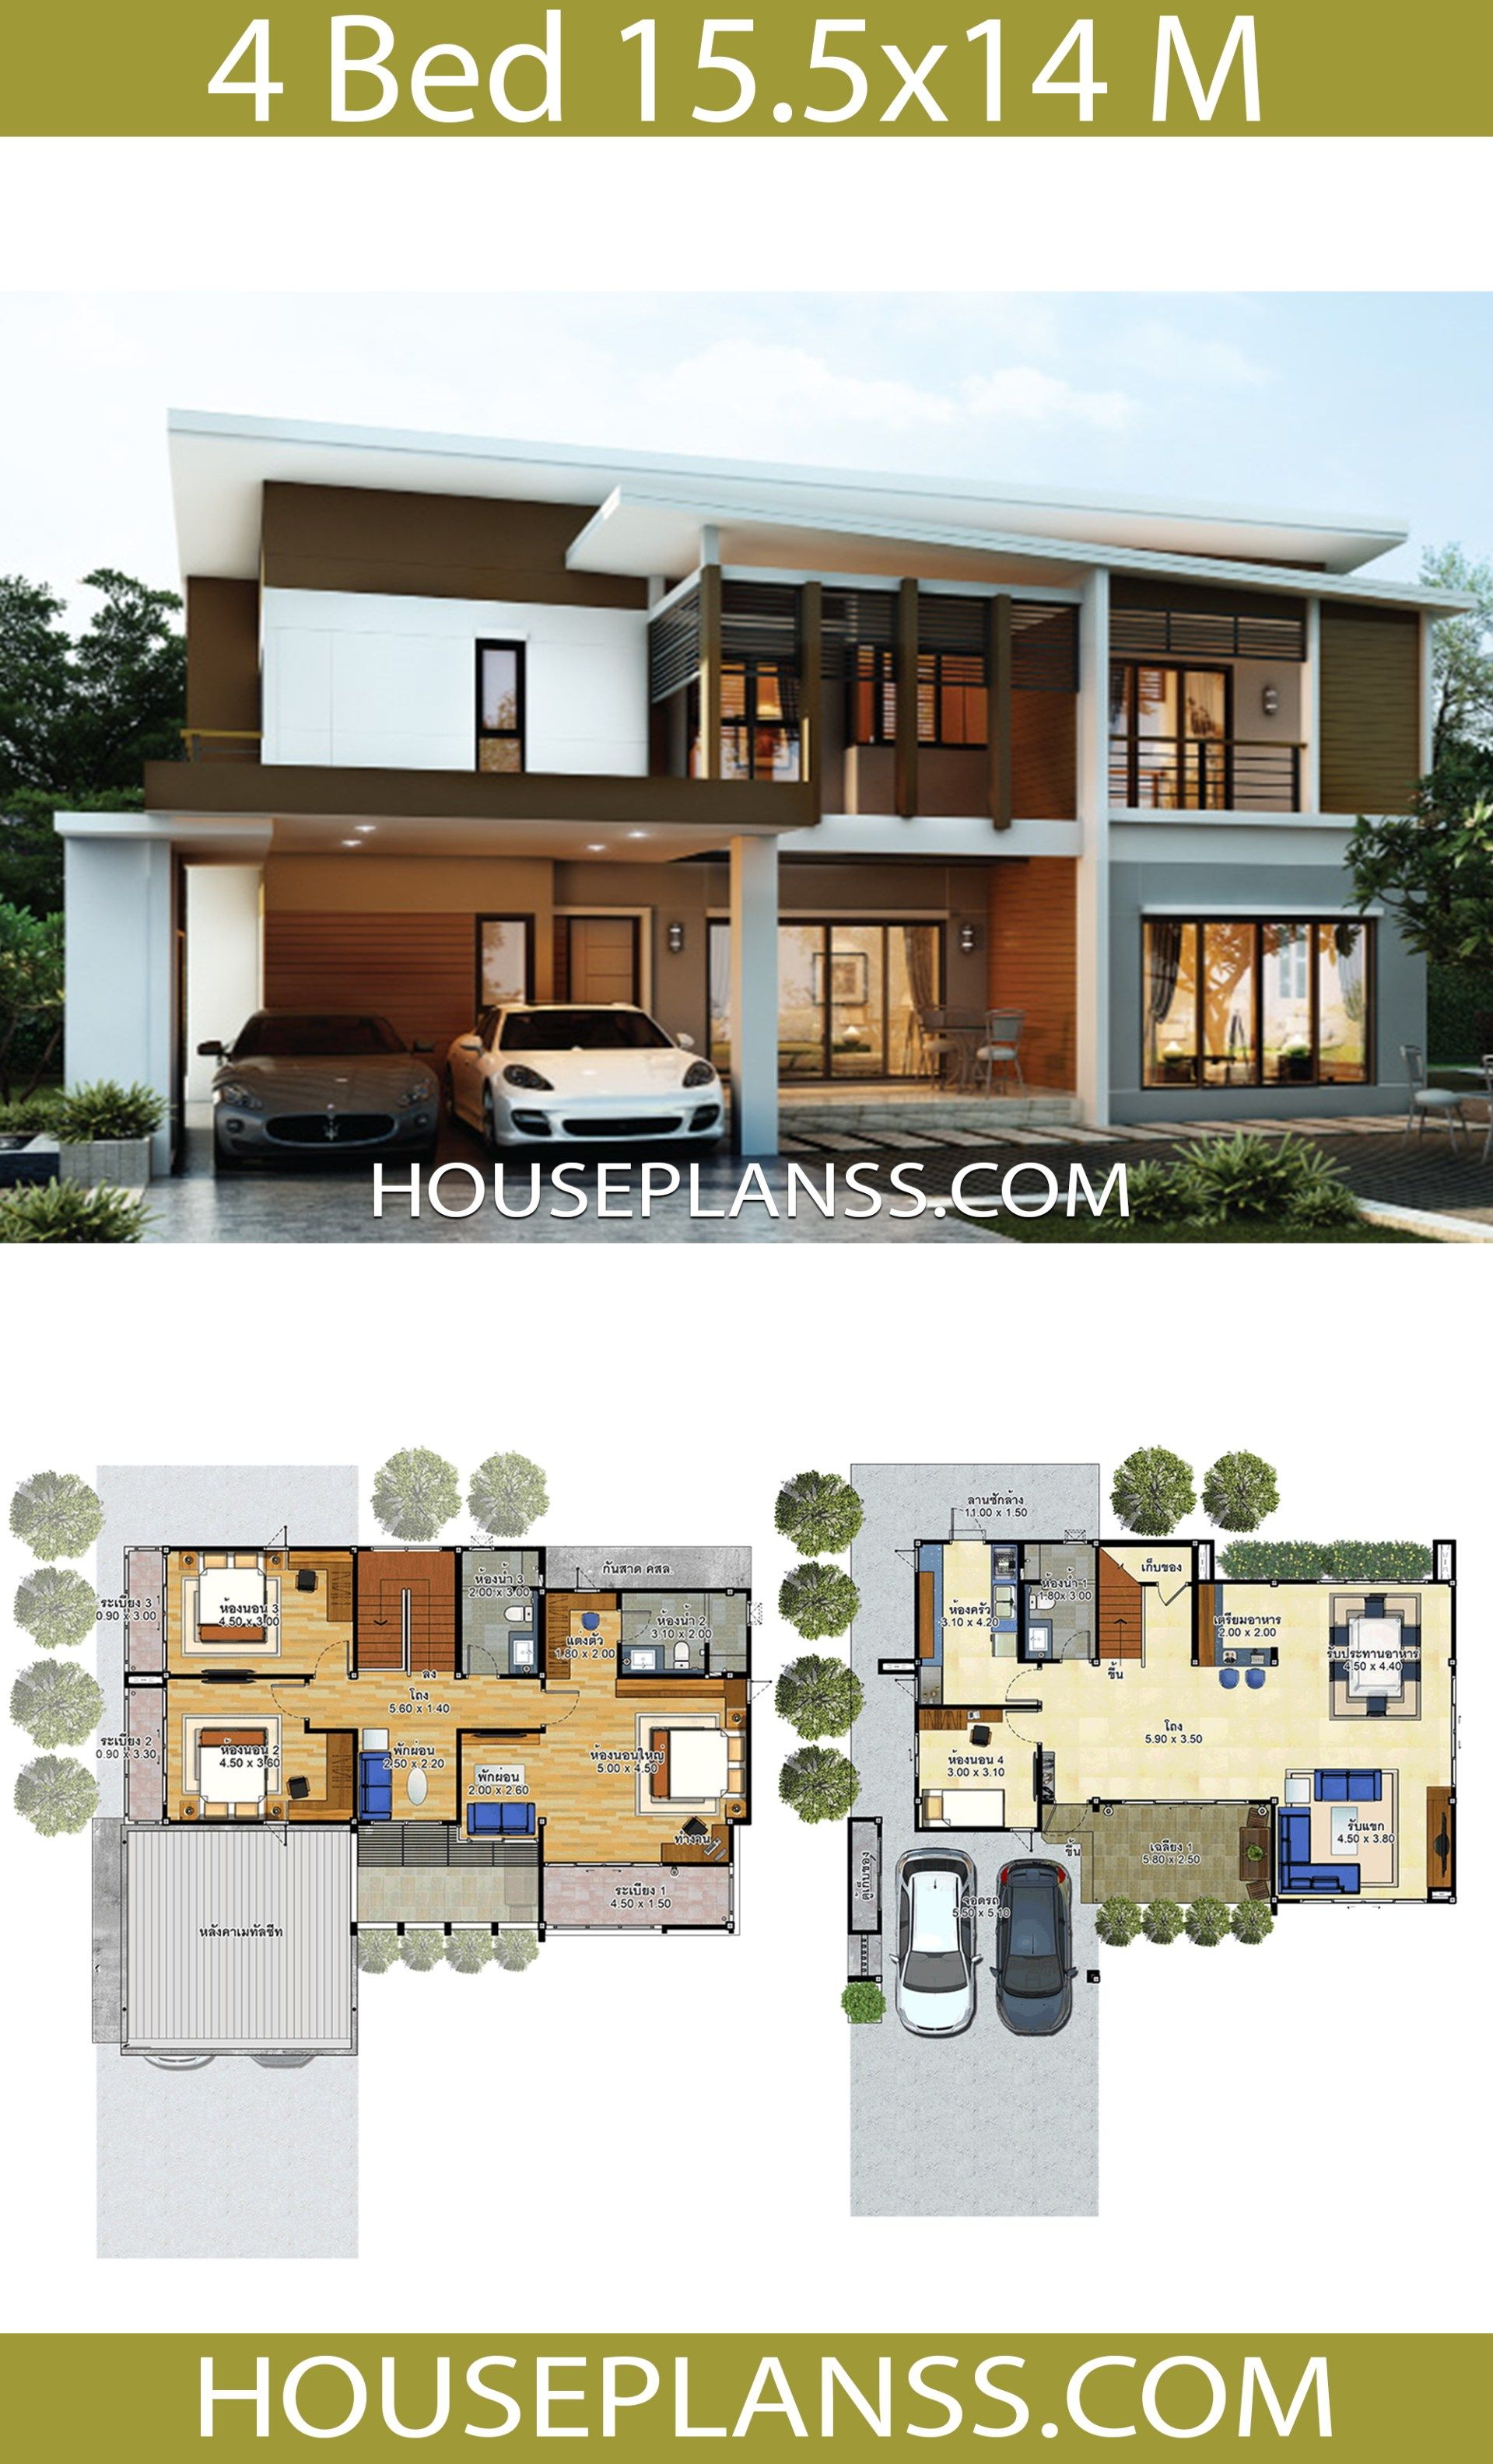 House Design Idea 15 5x14 With 4 Bedrooms House Design Simple House Design House Plans